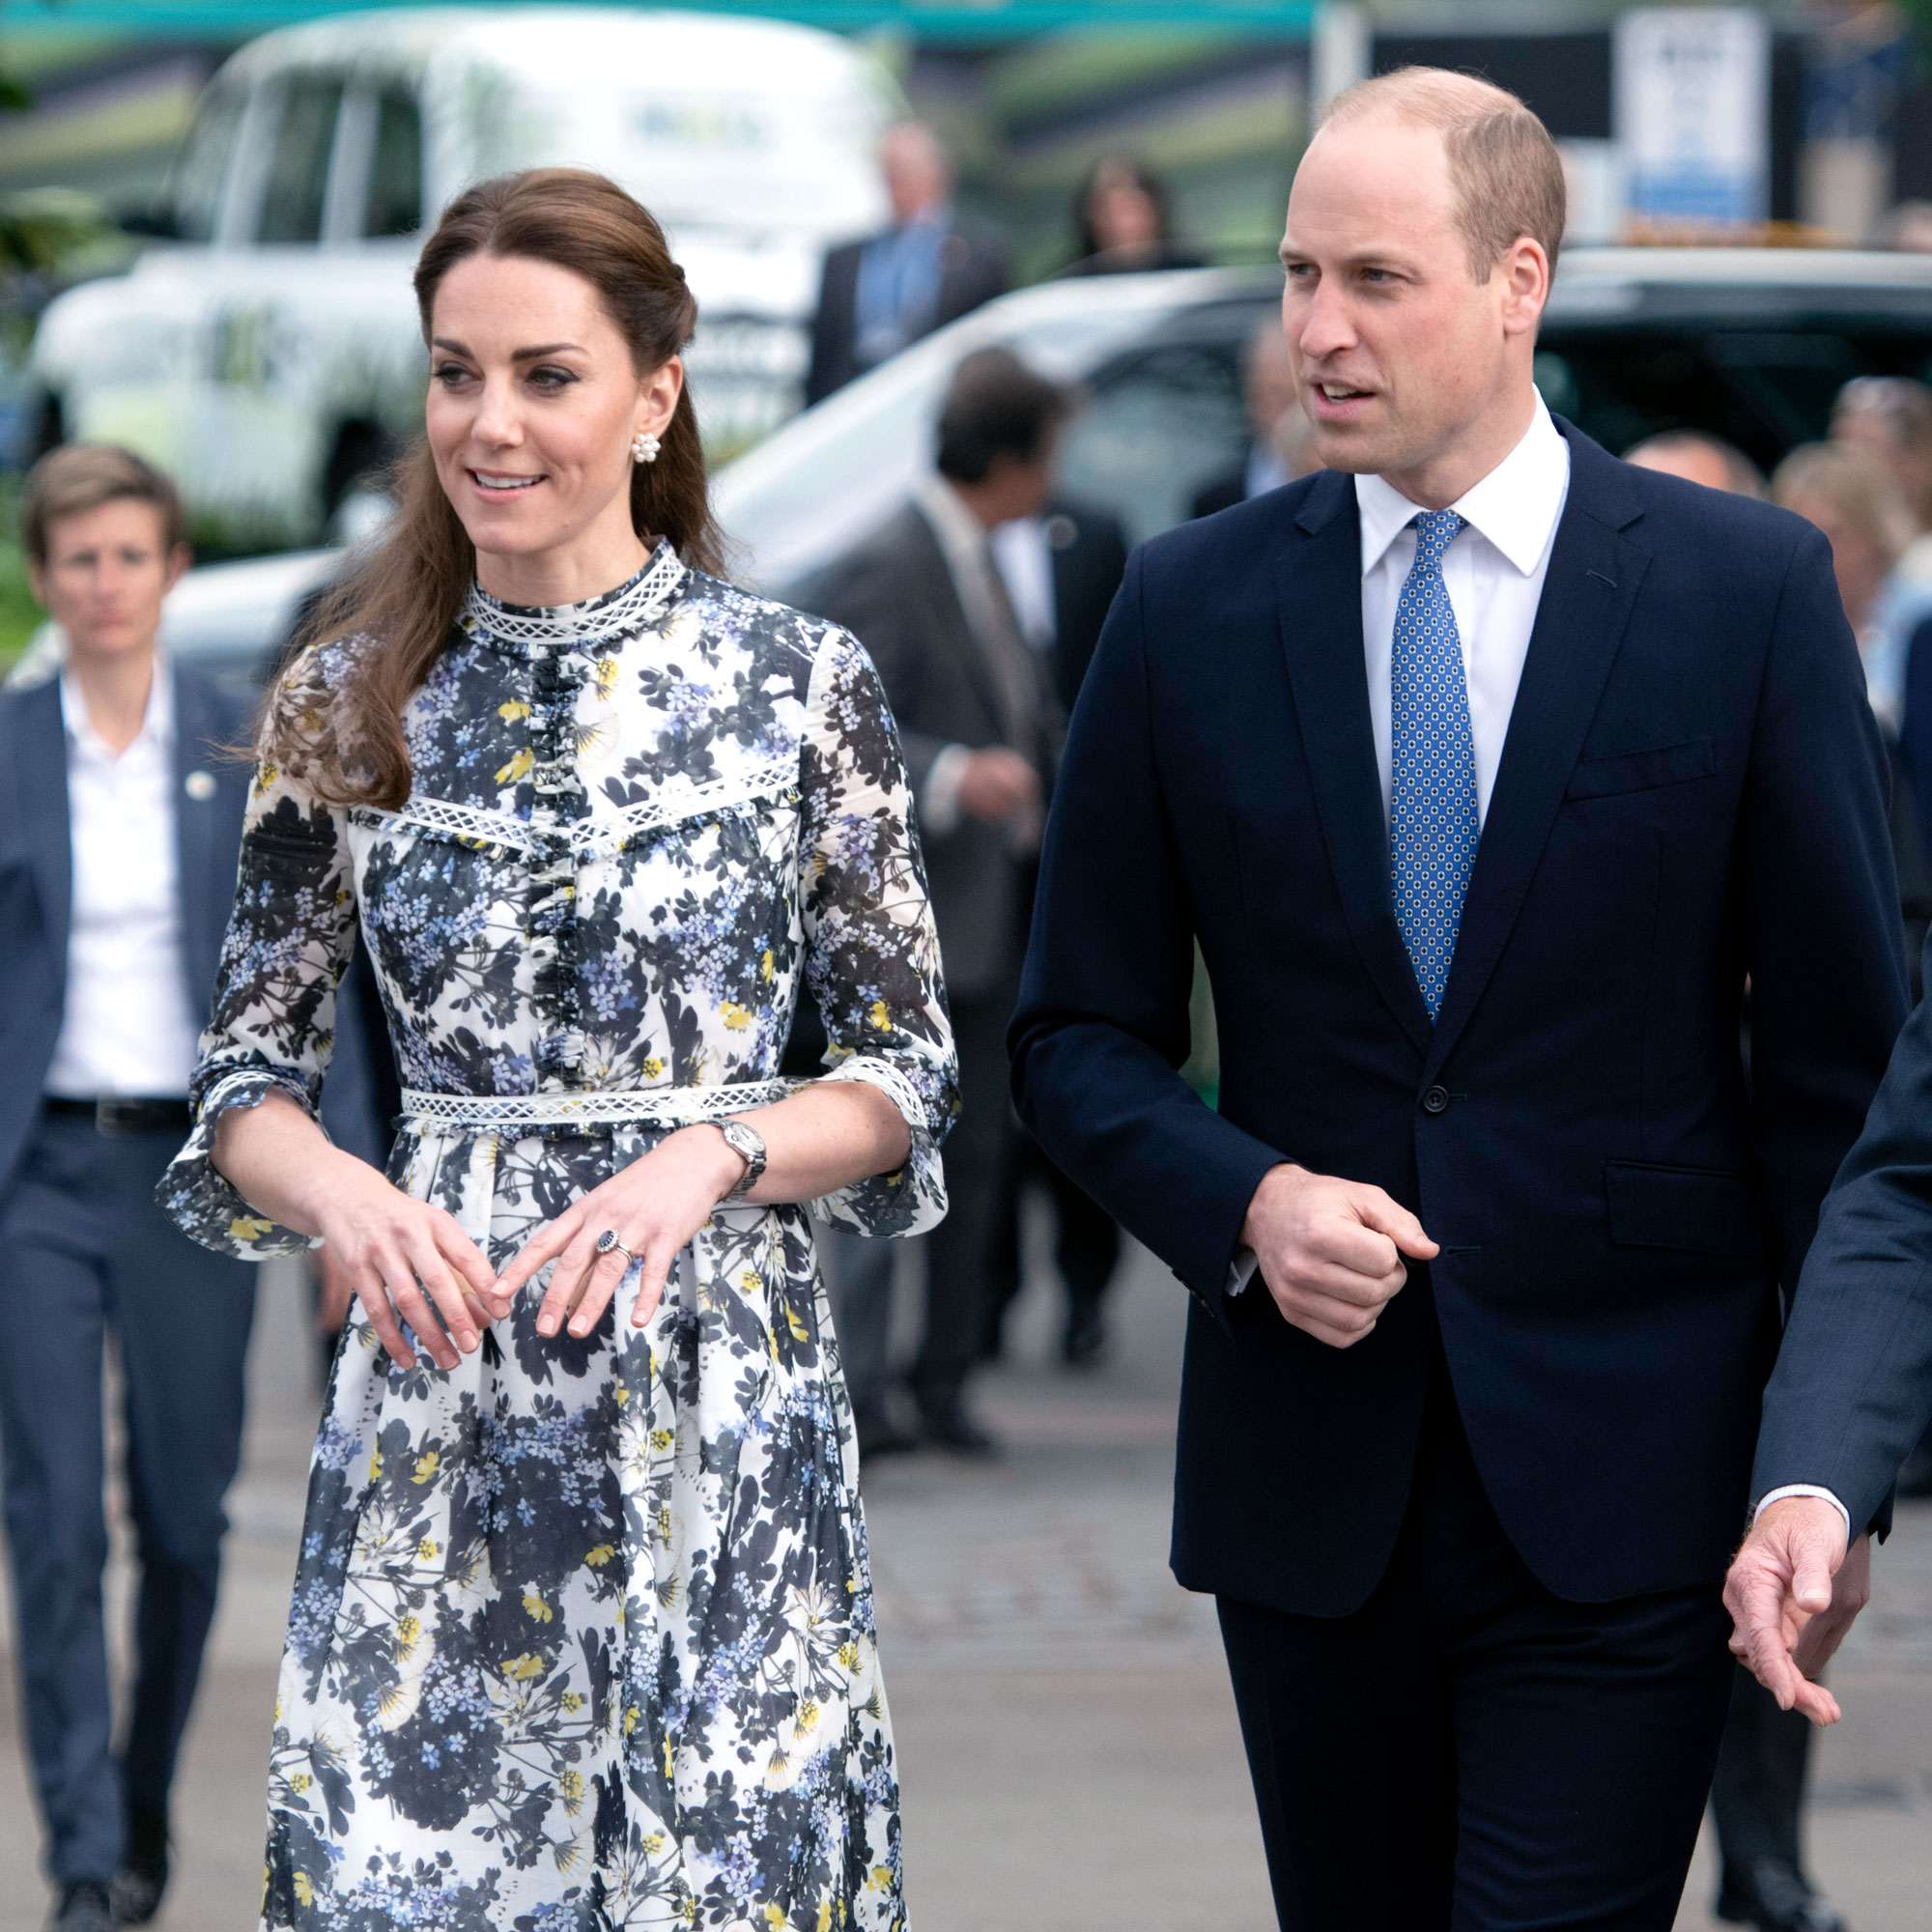 How Prince William and Duchess Kate Bounced Back After 'Hurtful' Rumors He Had an Affair